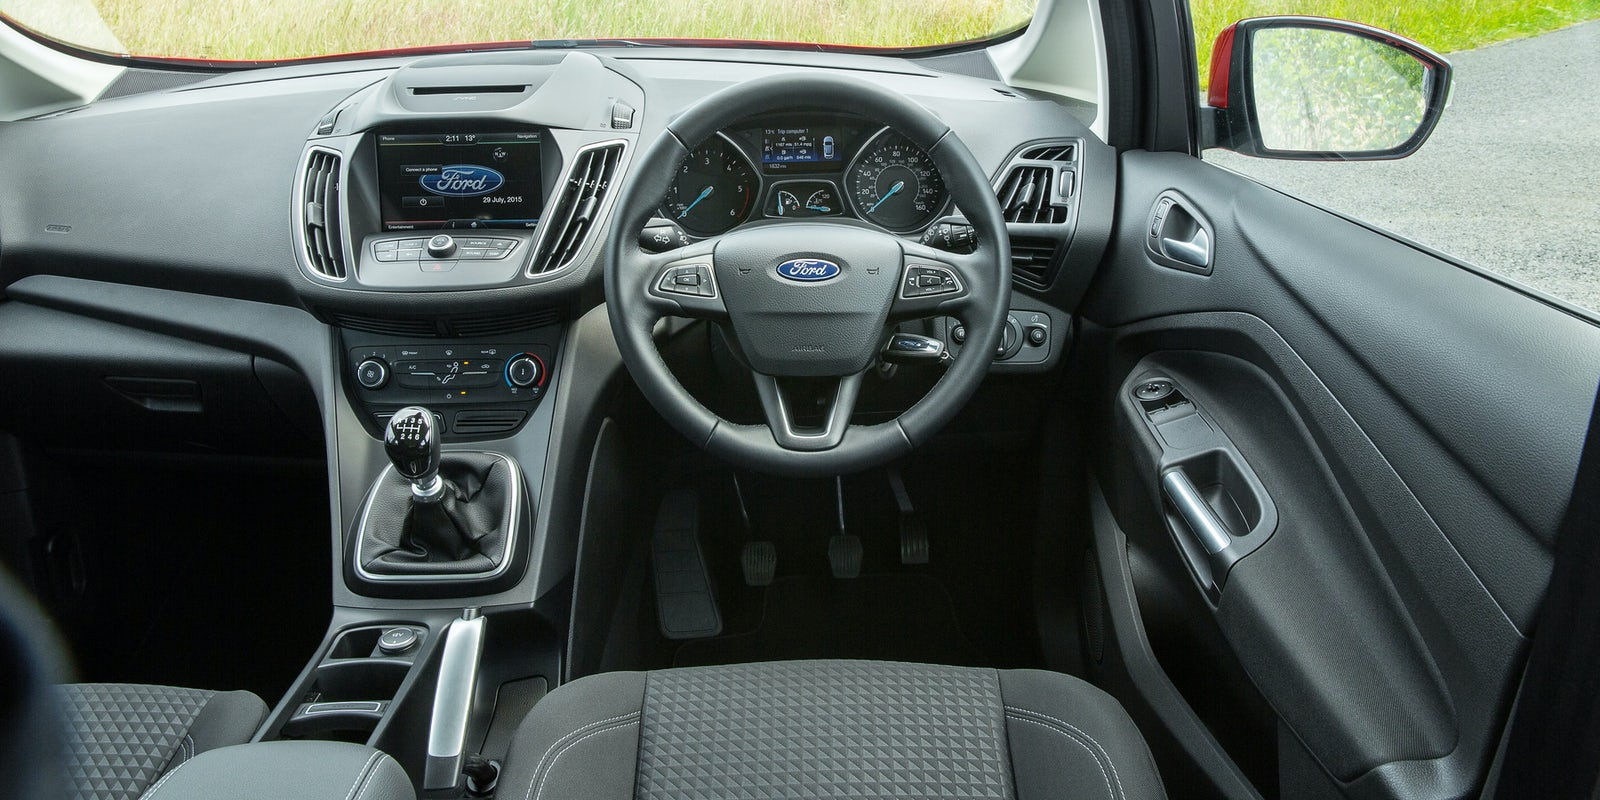 ford c max interior infotainment carwow. Black Bedroom Furniture Sets. Home Design Ideas